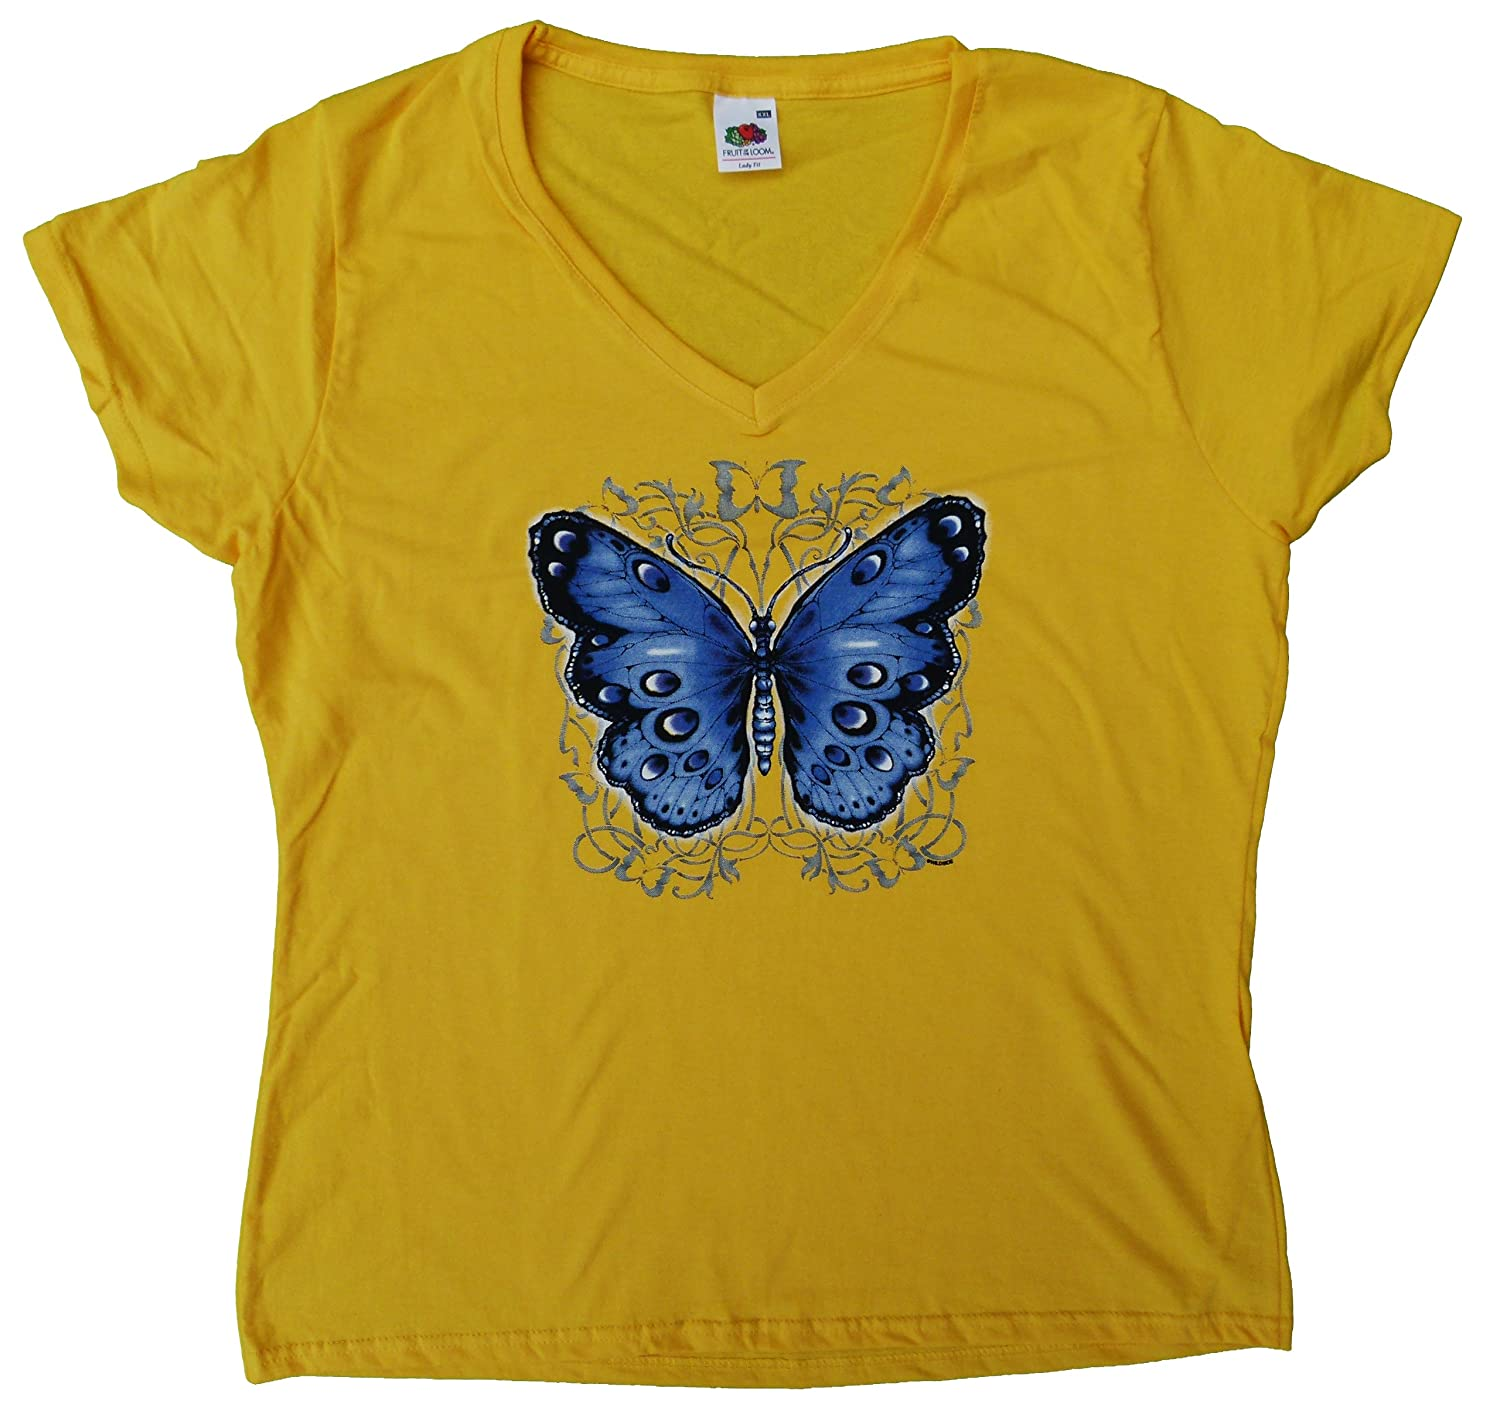 DarkArt-Designs Gothic T-Shirt Blue Butterfly slim fit: Amazon.co.uk:  Clothing